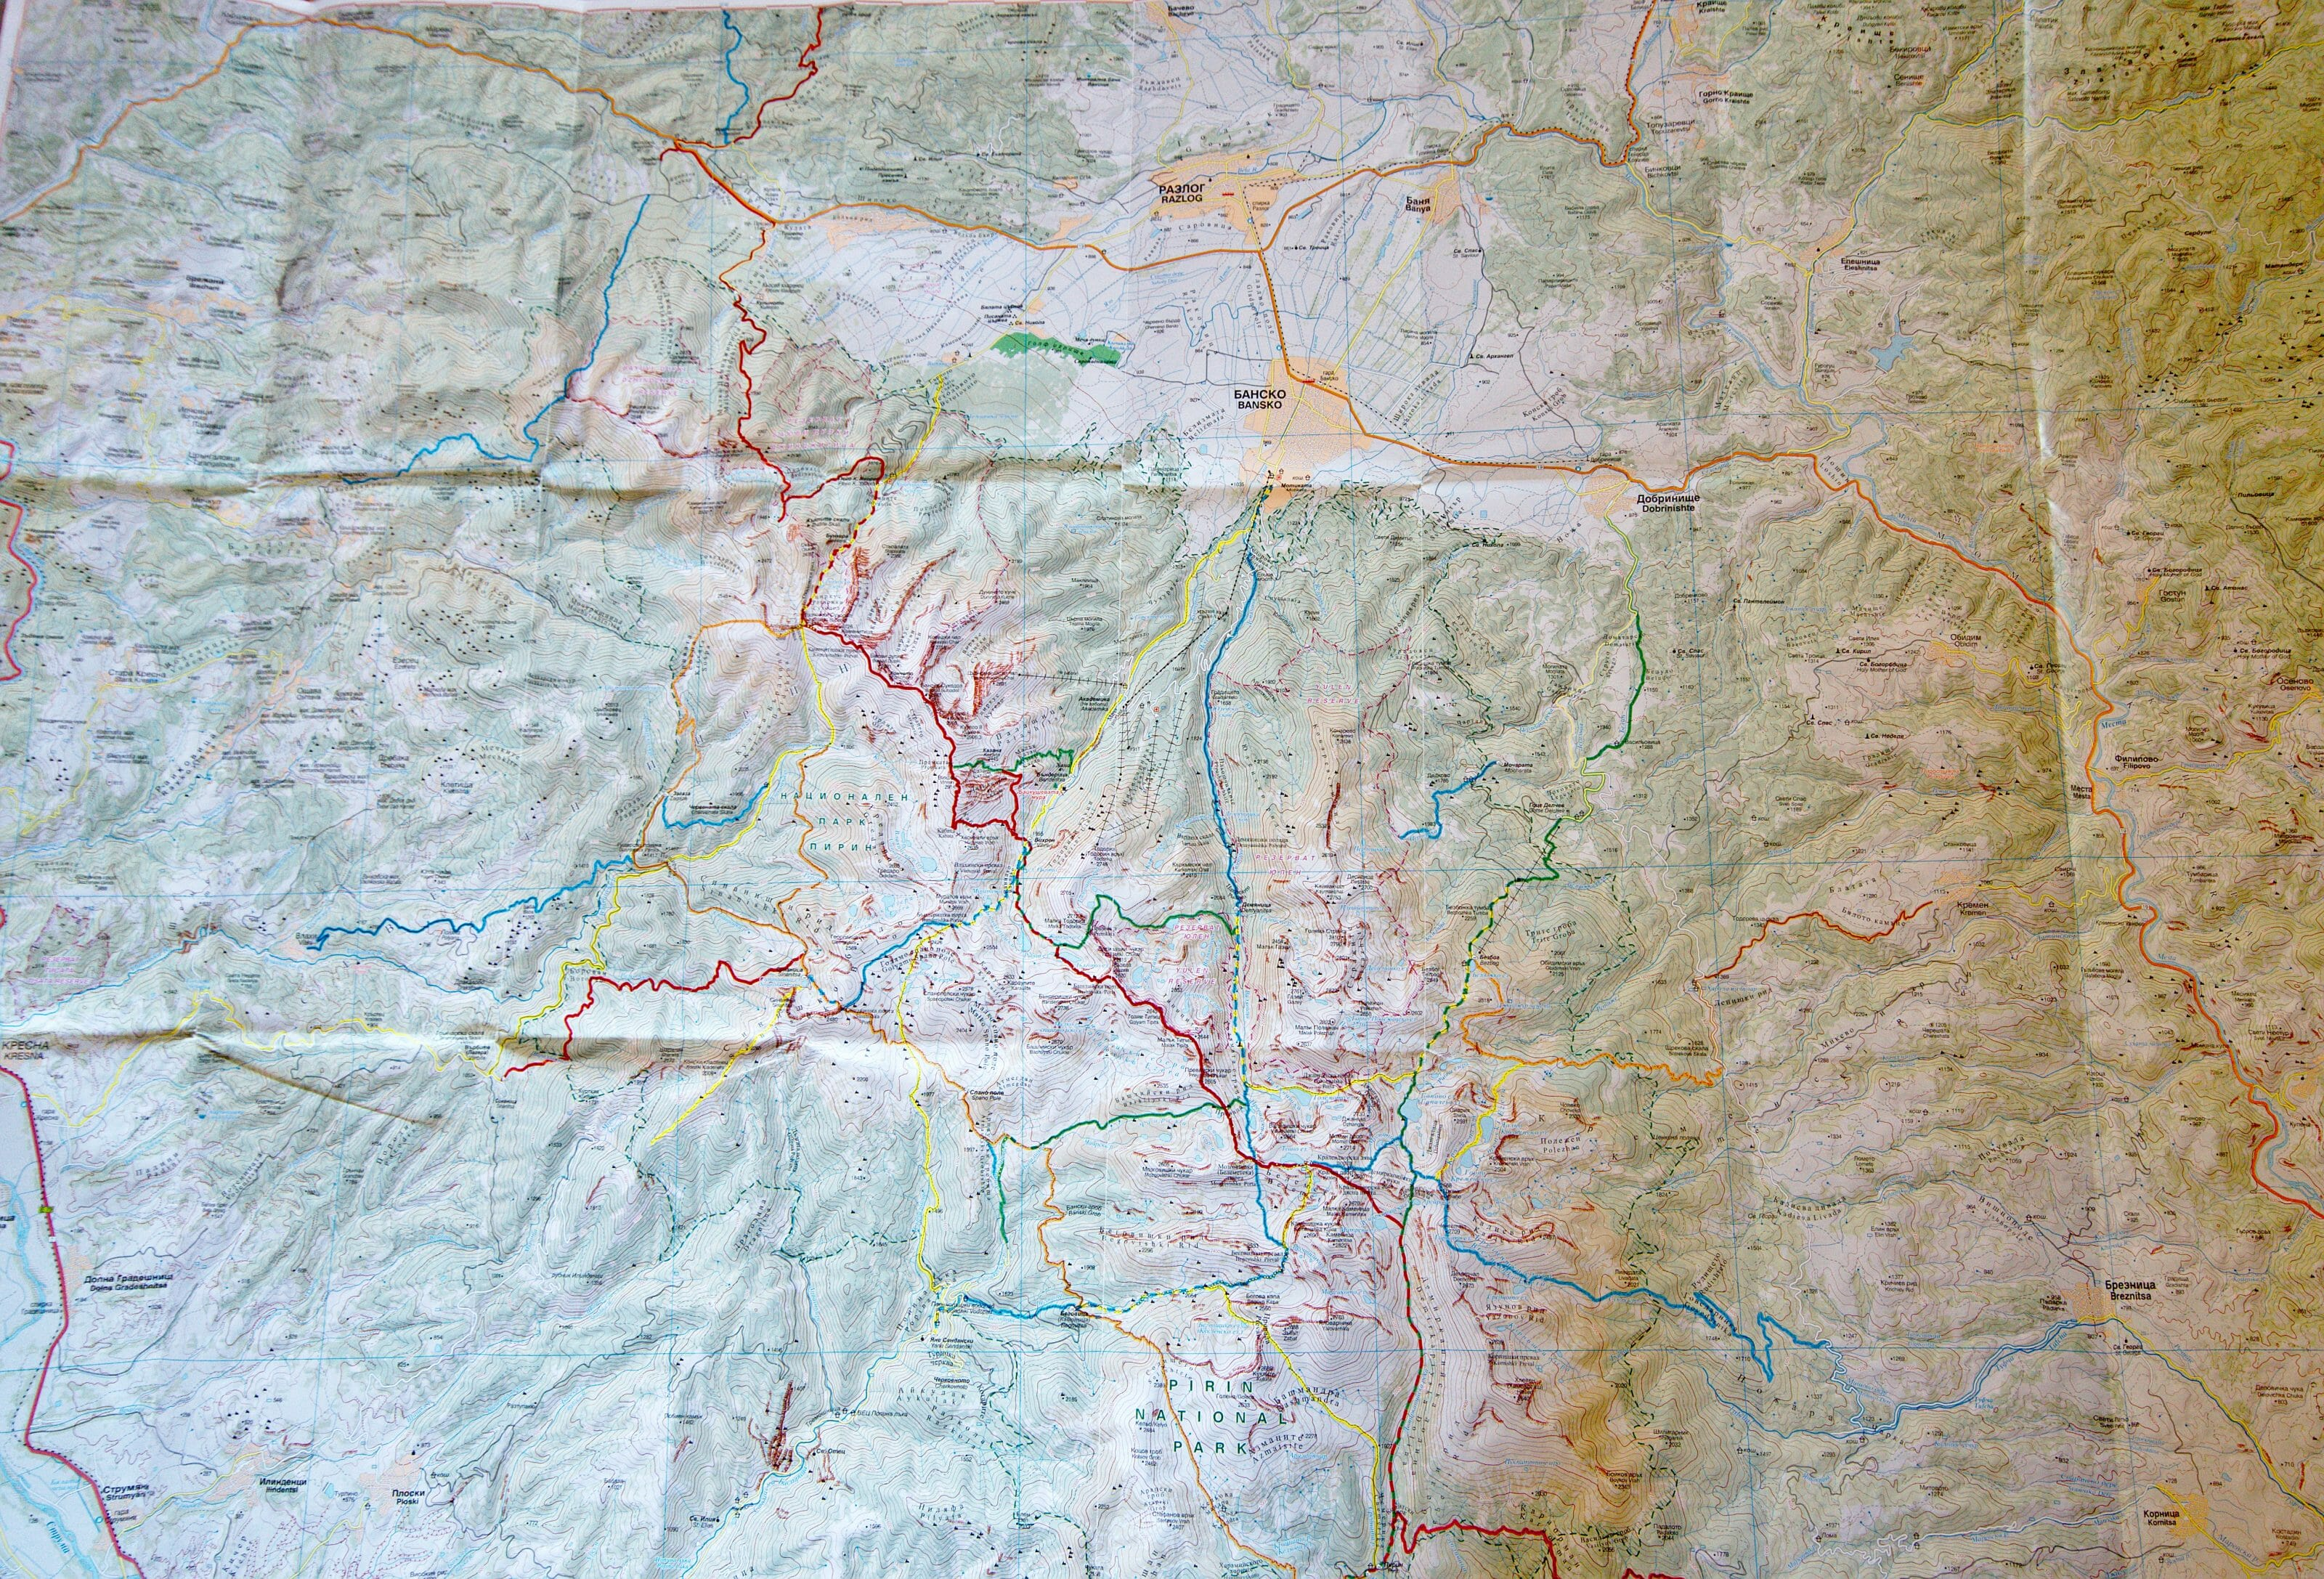 pirin national park map 1